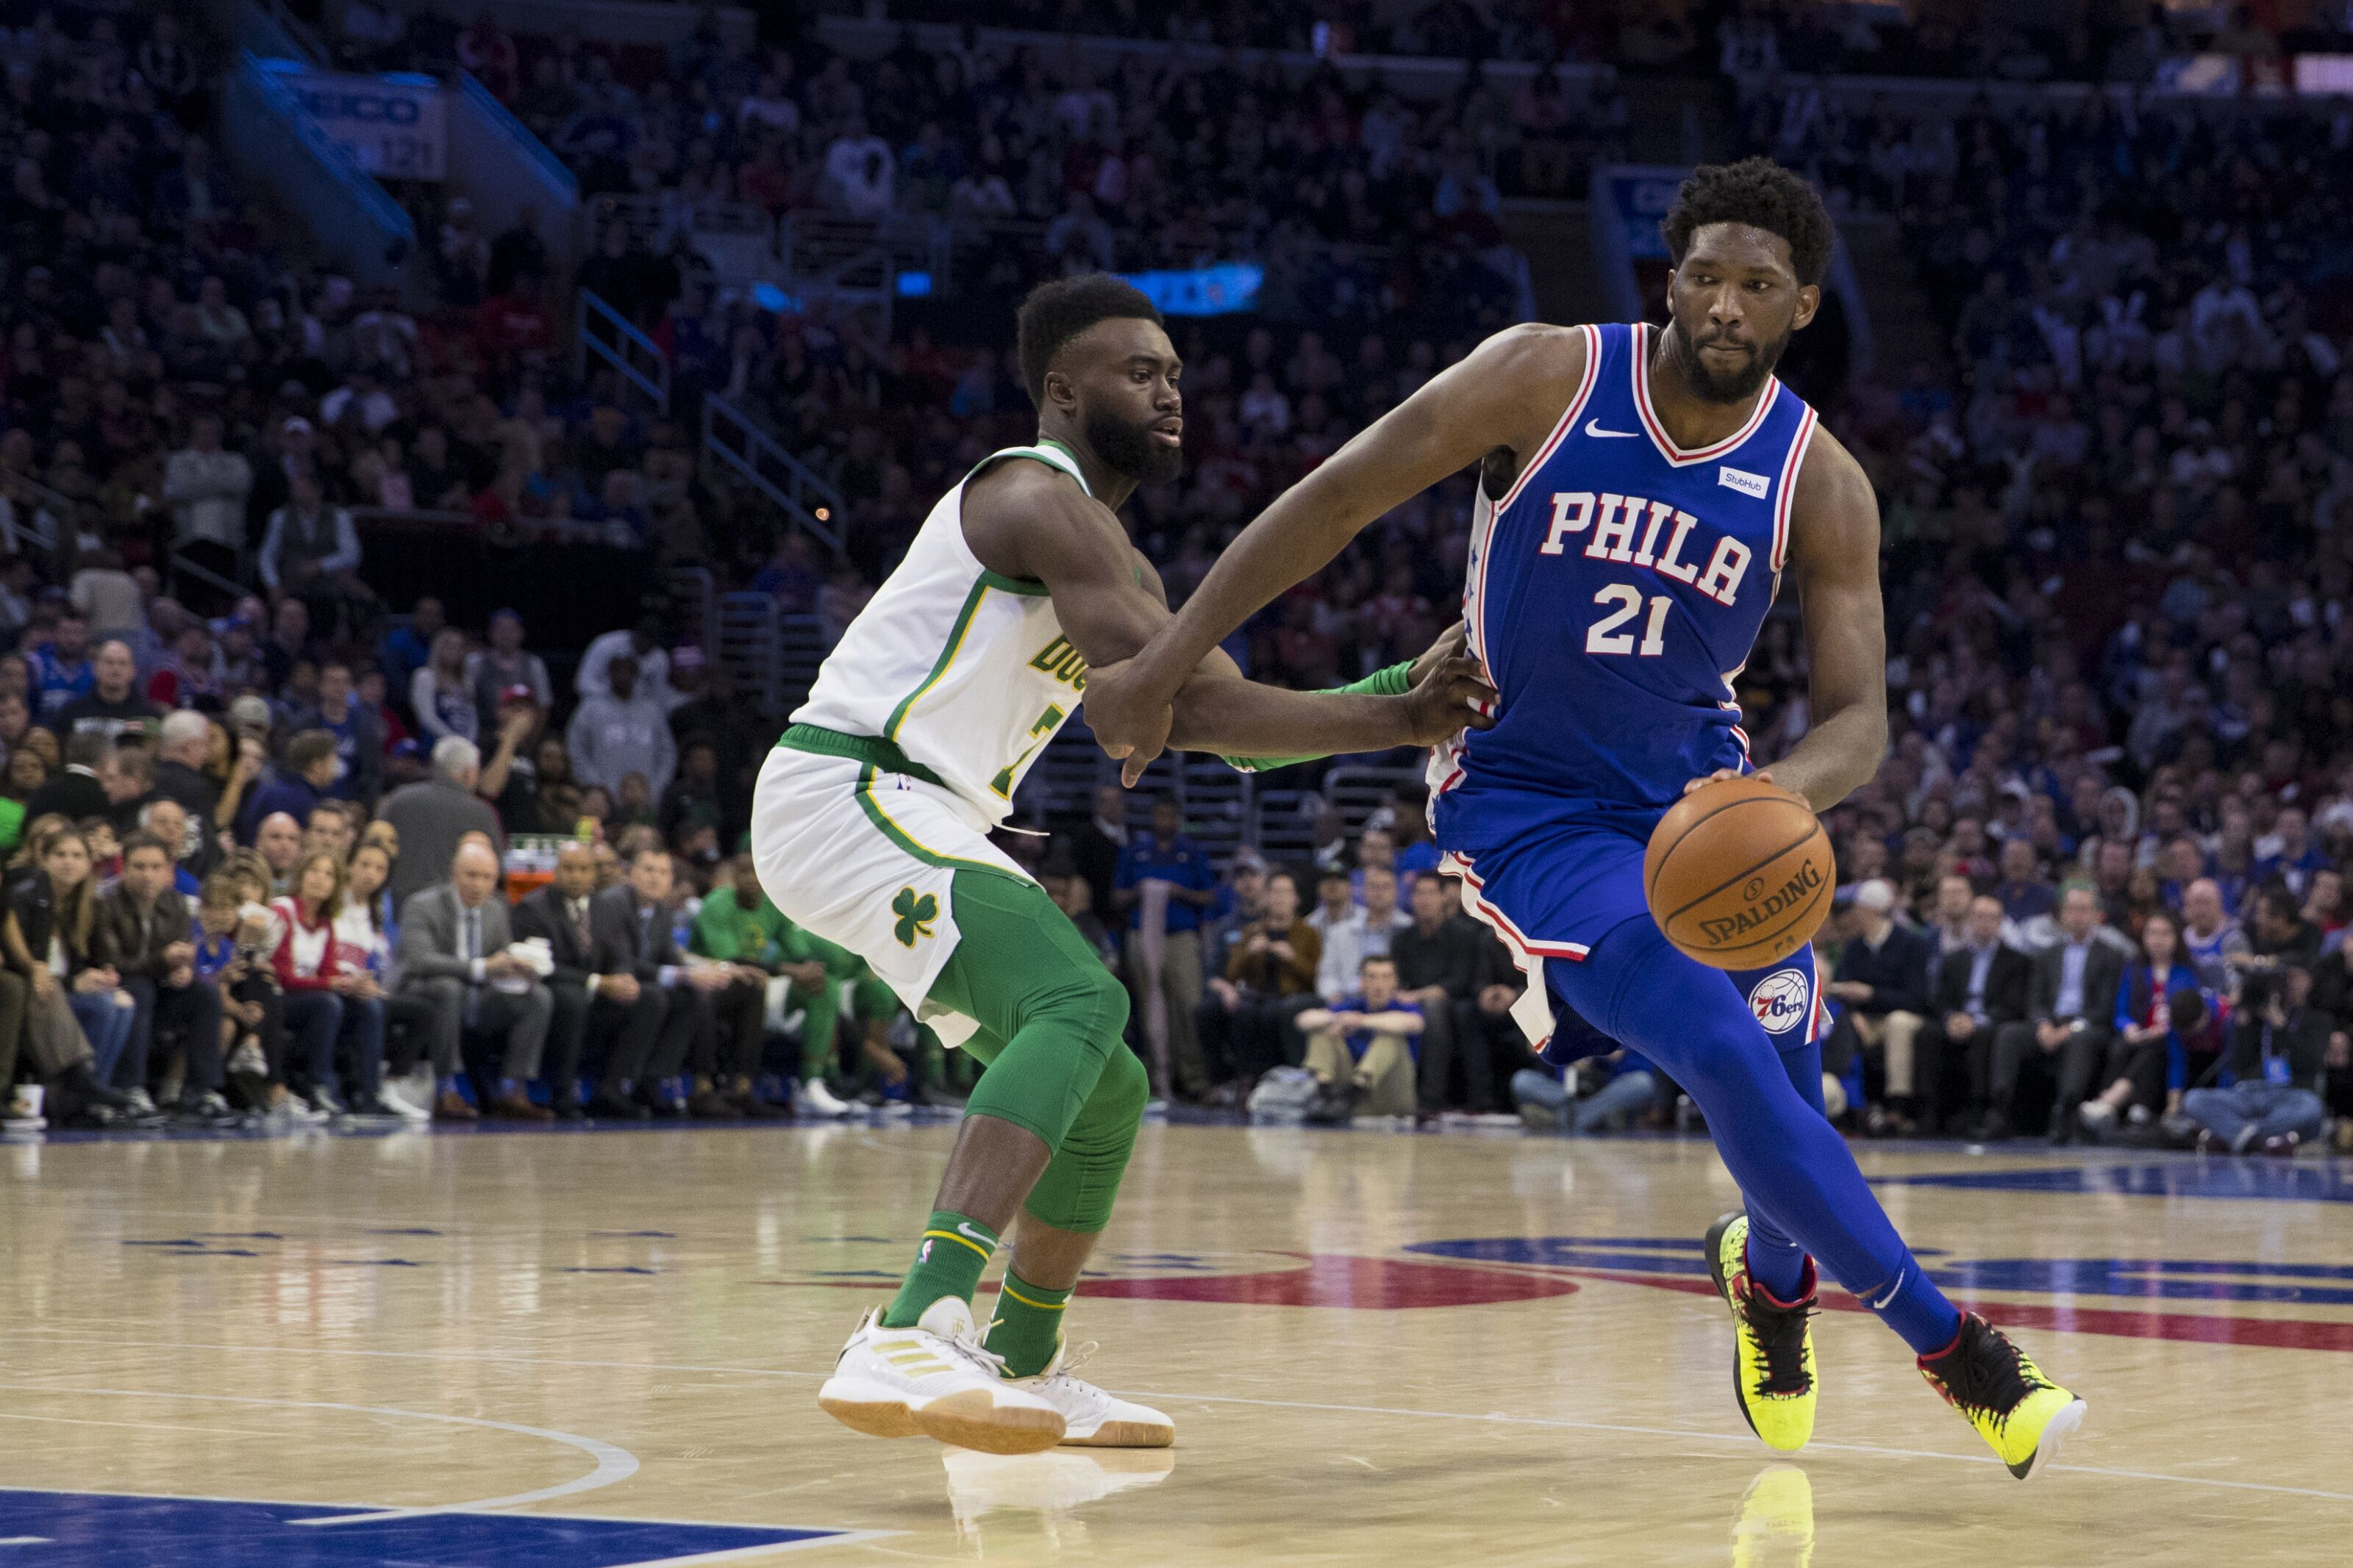 The Boston Celtics will severely struggle against talented big men in 2019